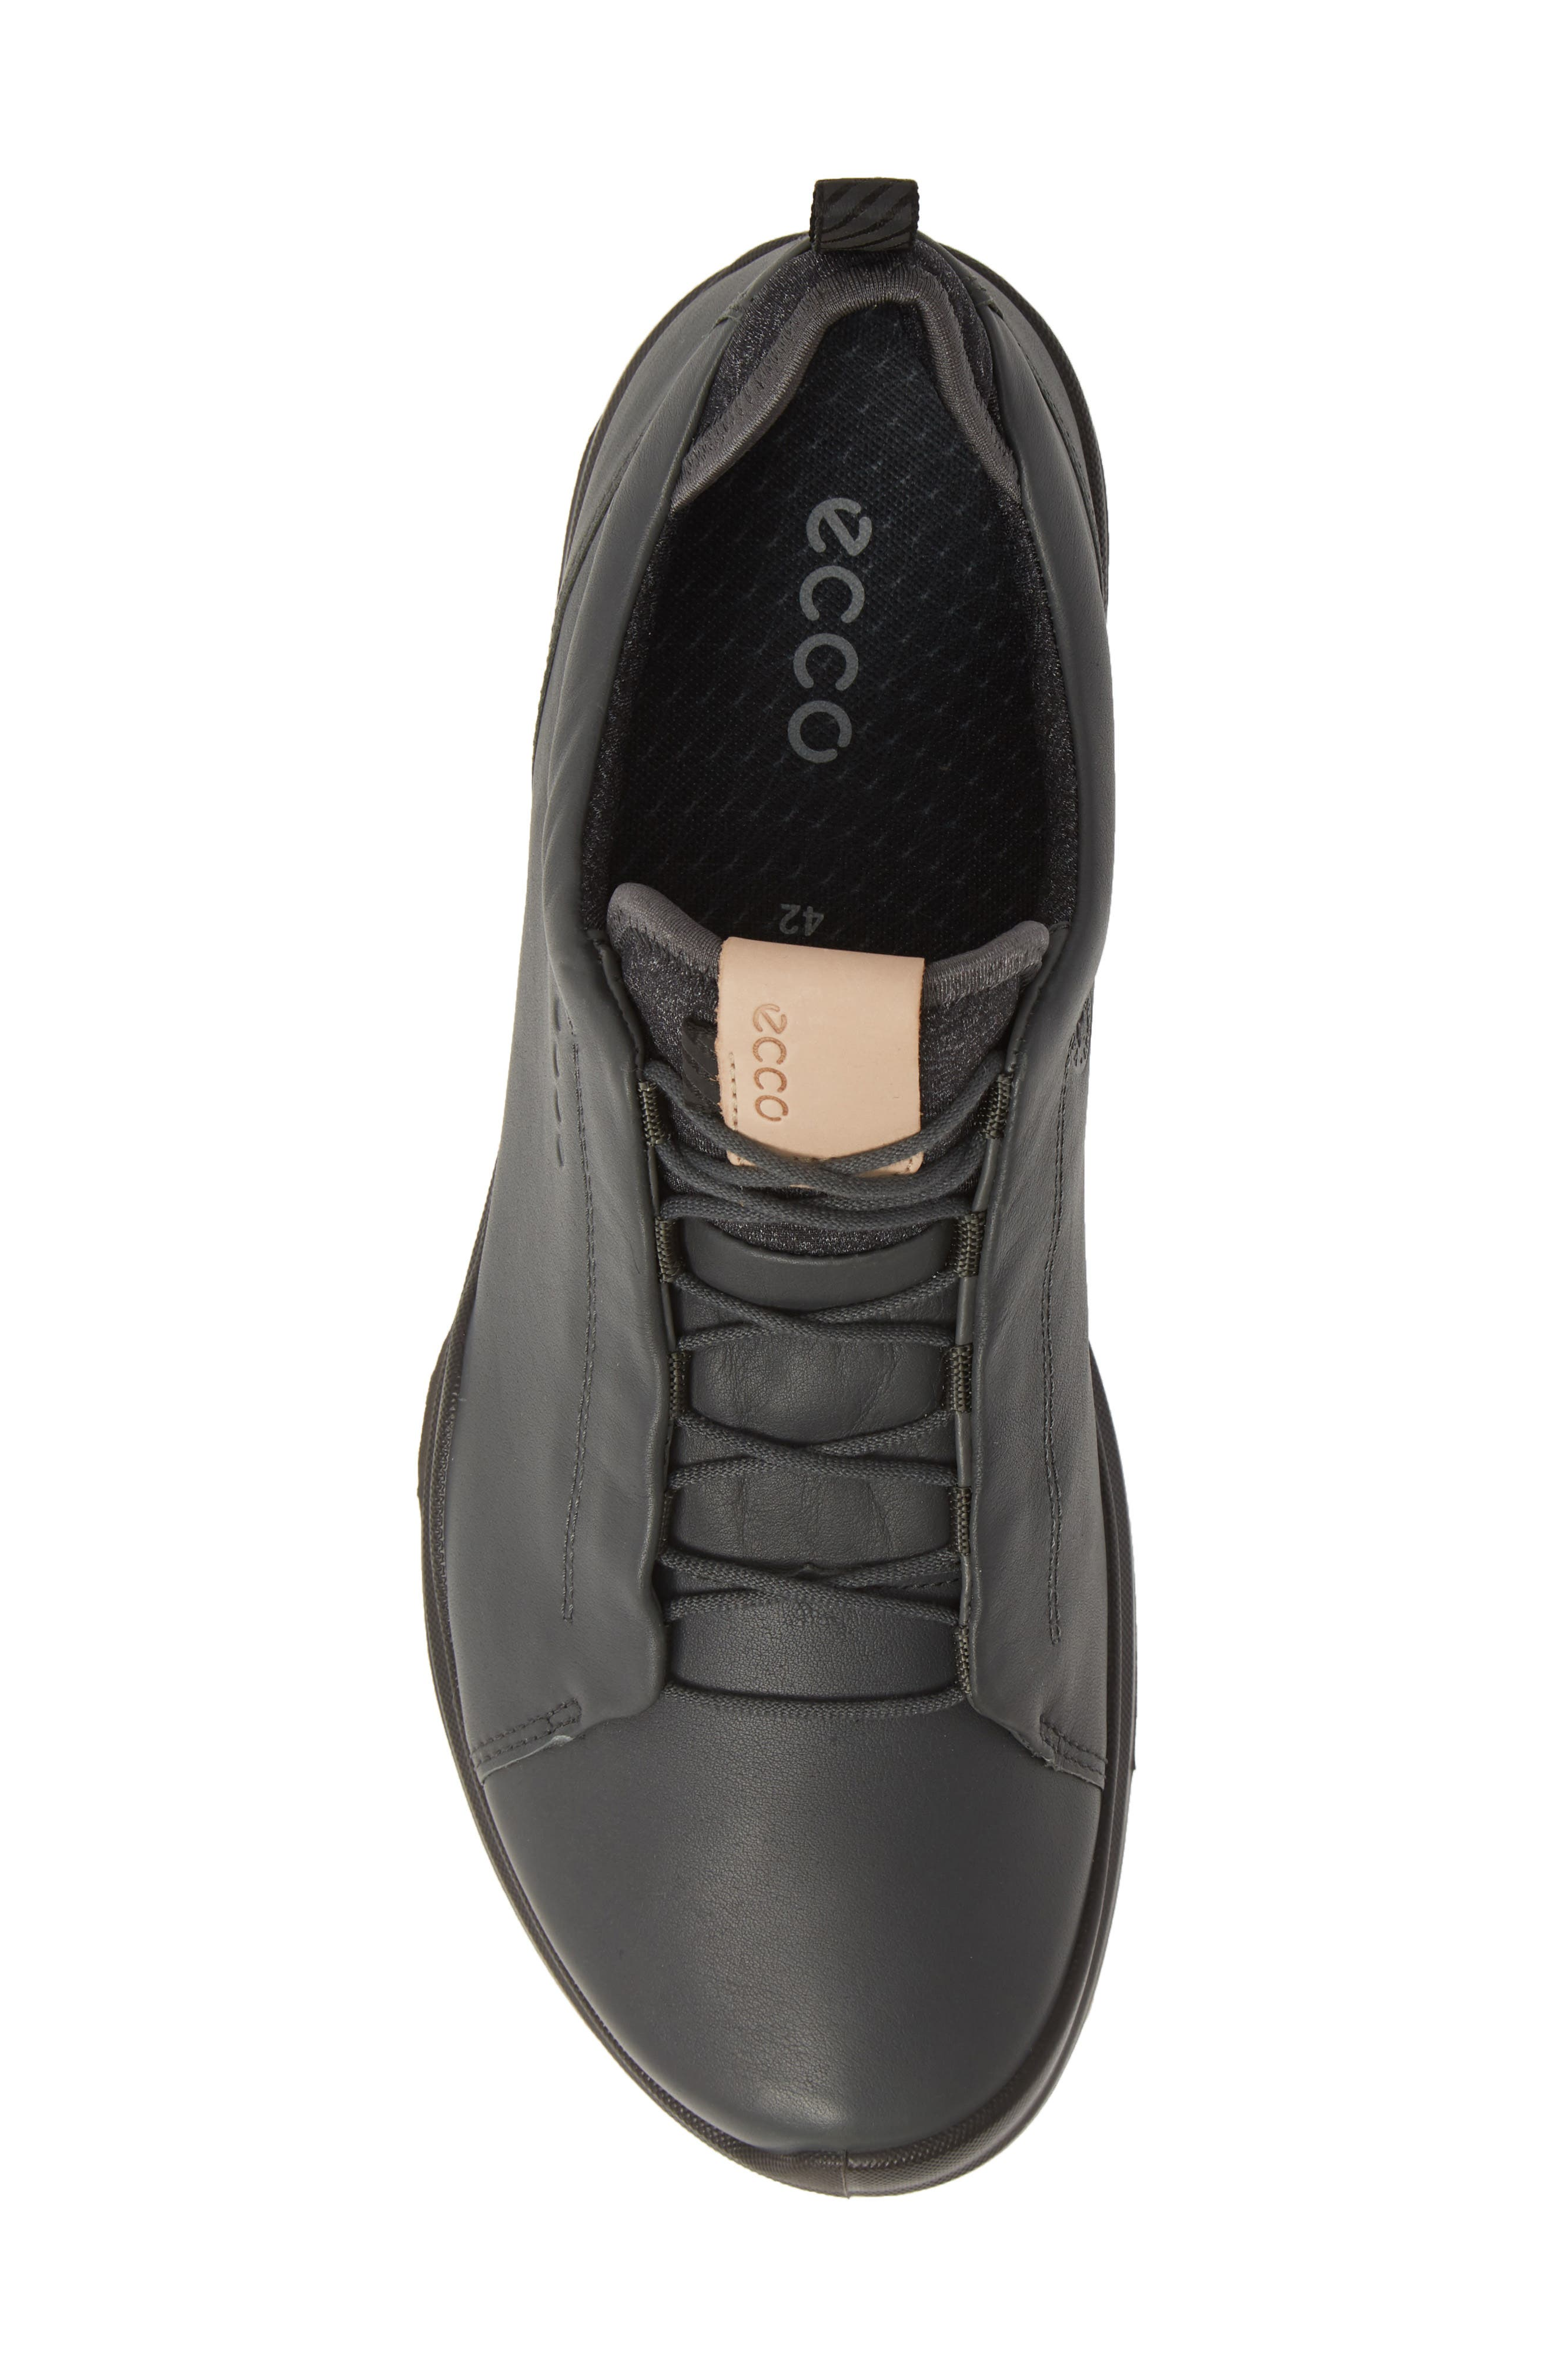 ECCO, BIOM<sup>®</sup> Hybrid 3 OL Gore-Tex<sup>®</sup> Golf Shoe, Alternate thumbnail 5, color, DARK SHADOW LEATHER